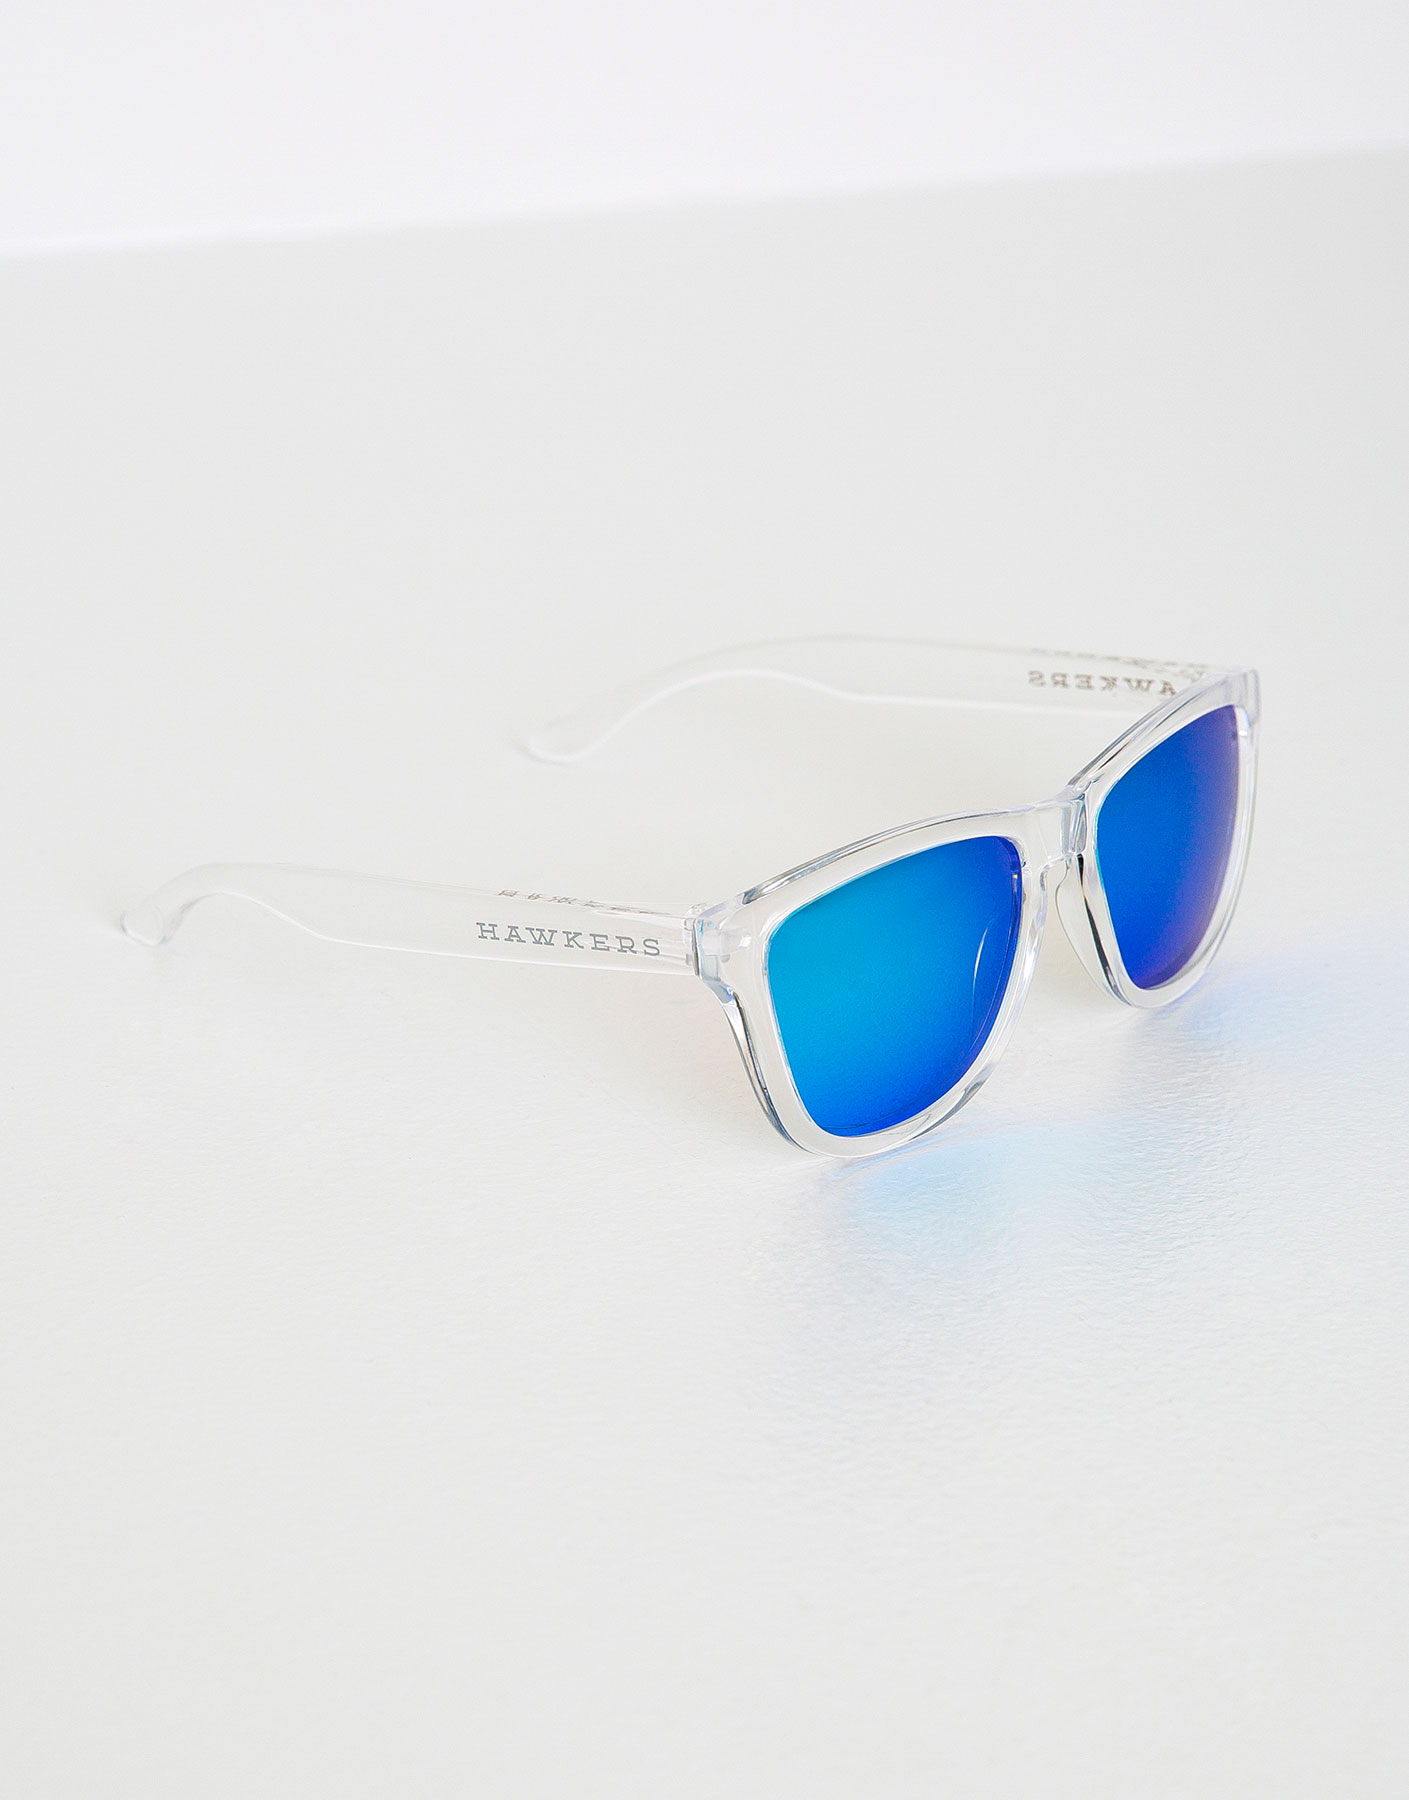 Occhiali da sole hawkers air clear blue one